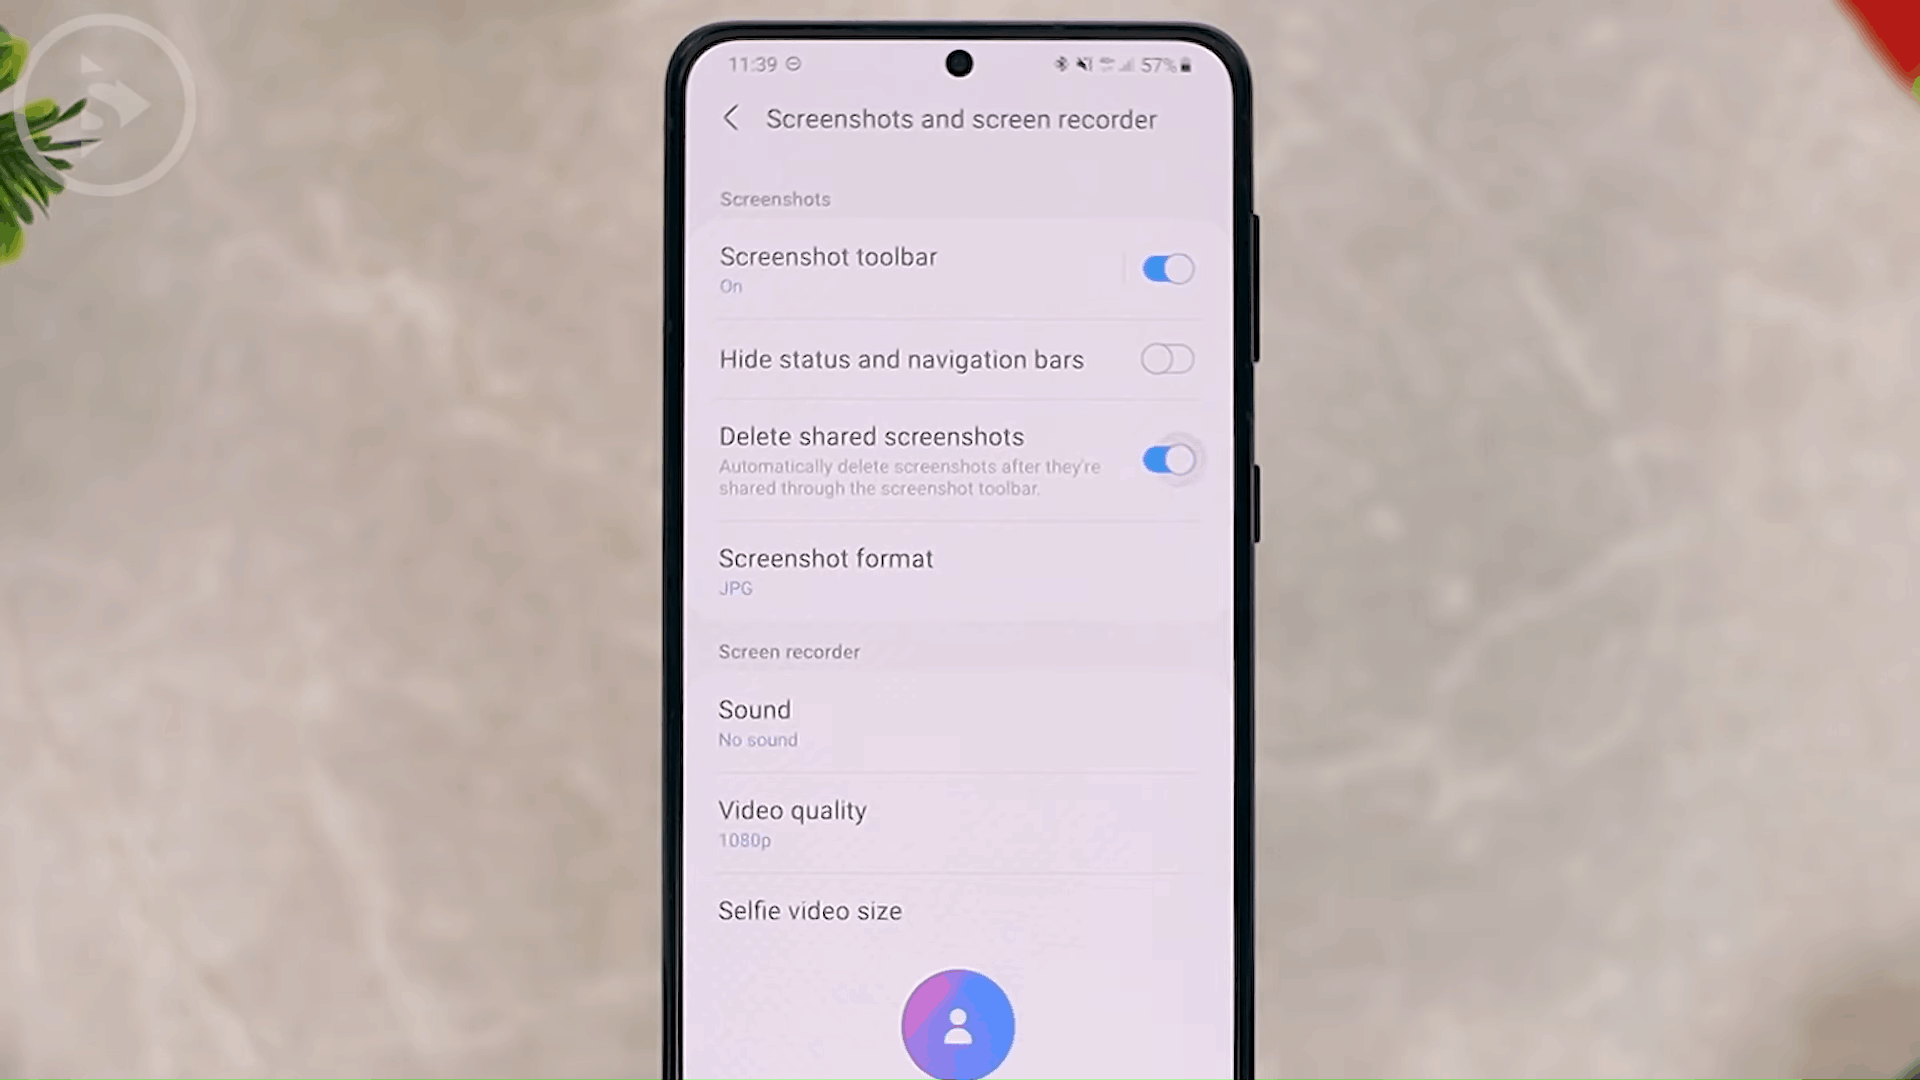 Auto Delete Shared Screenshot - 8 New and Cool Samsung Features in One UI 3.0 and One UI 3.1